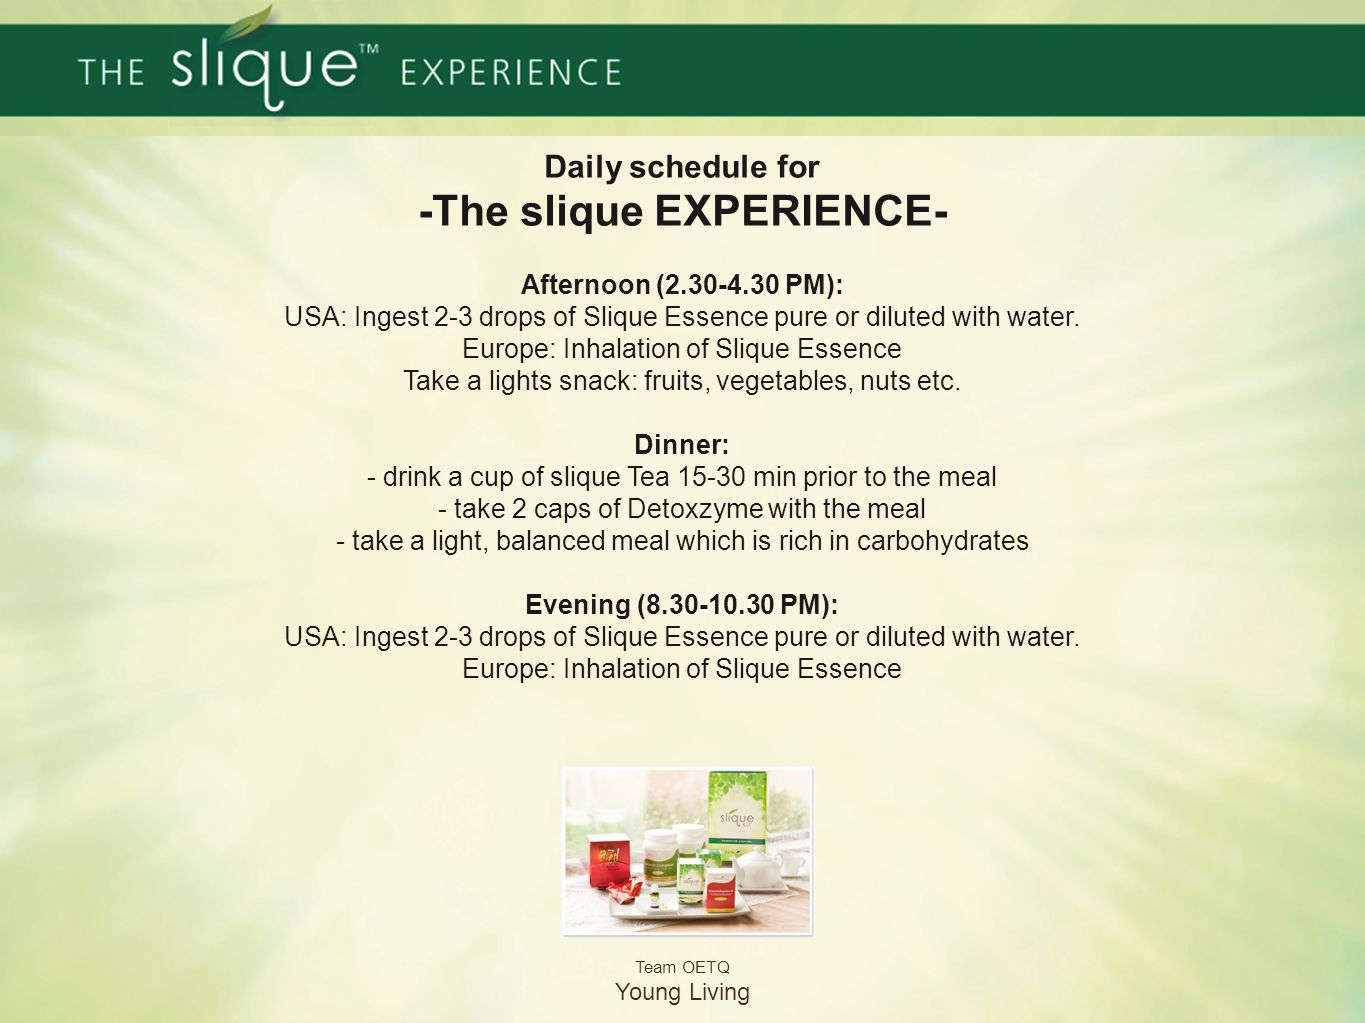 Daily schedule for -The slique EXPERIENCE-